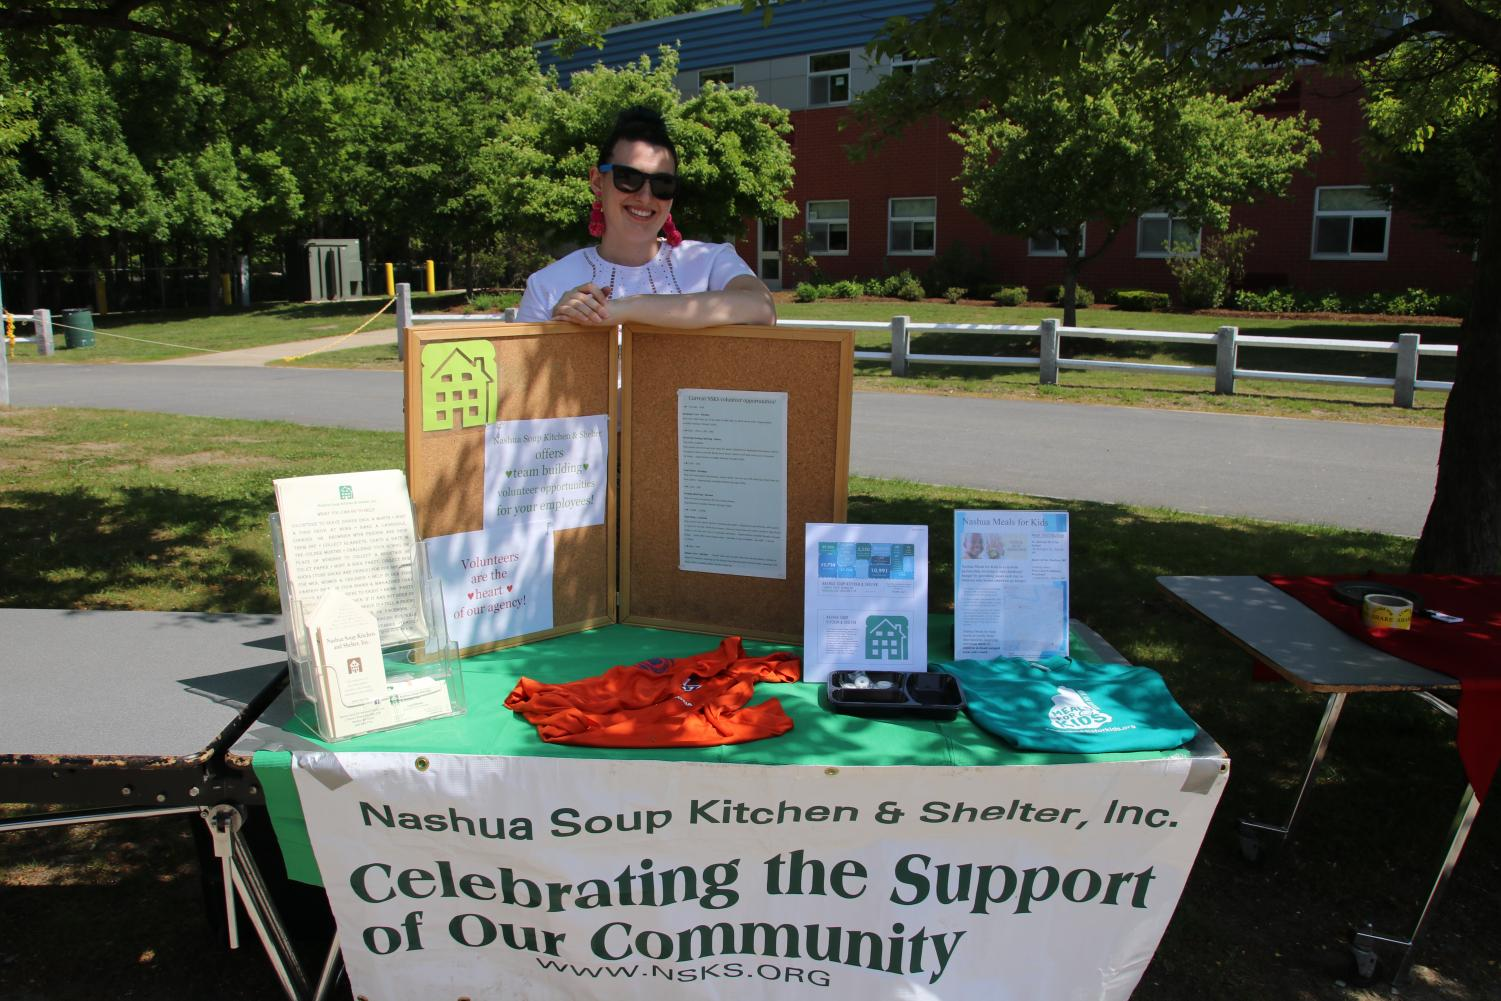 The+Nashua+Soup+Kitchen+and+Shelter+joined+other+local+organizations+at+this+charity+fair.